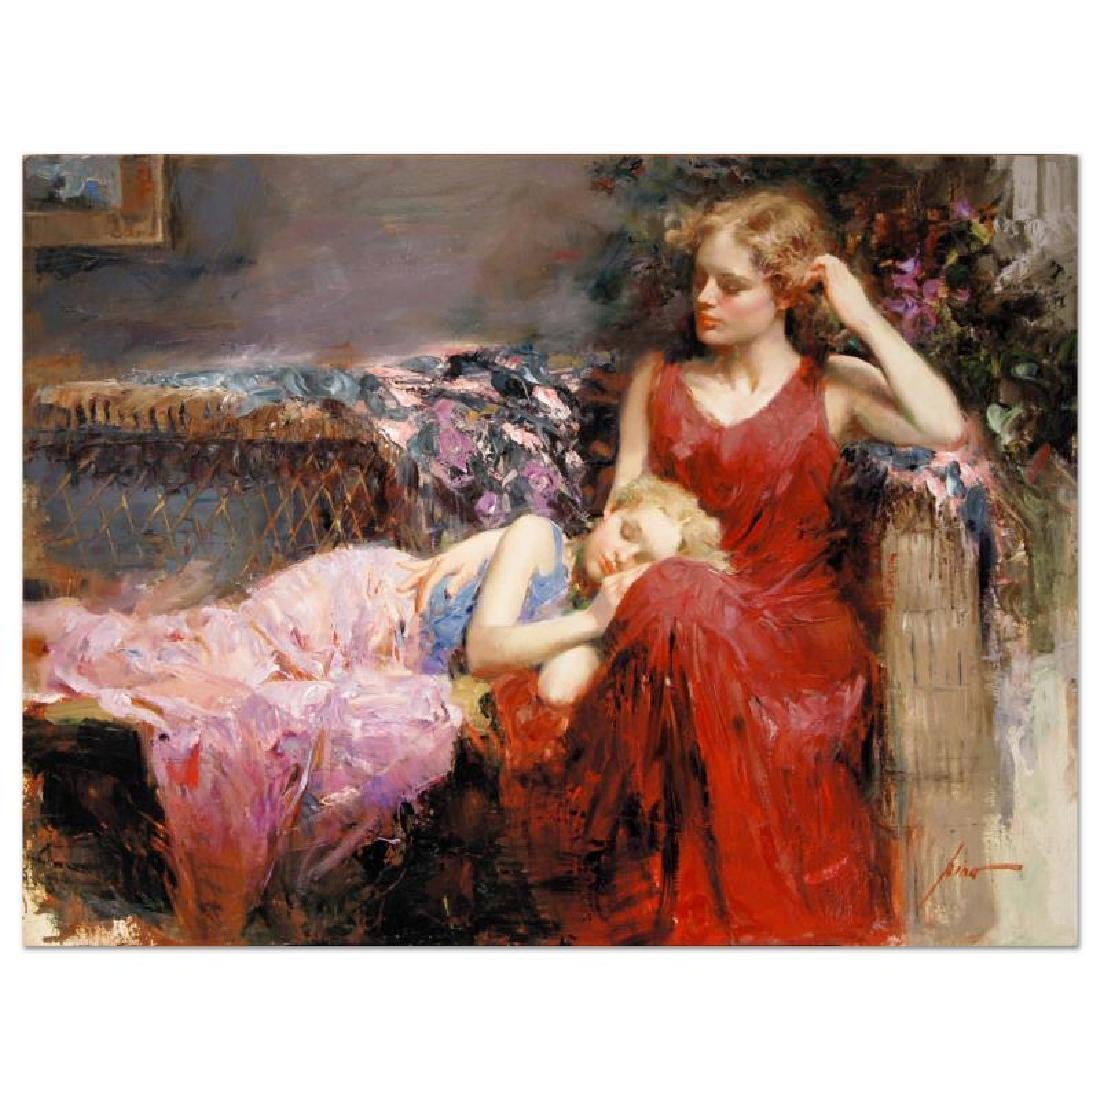 A Mother's Love by Pino (1939-2010)